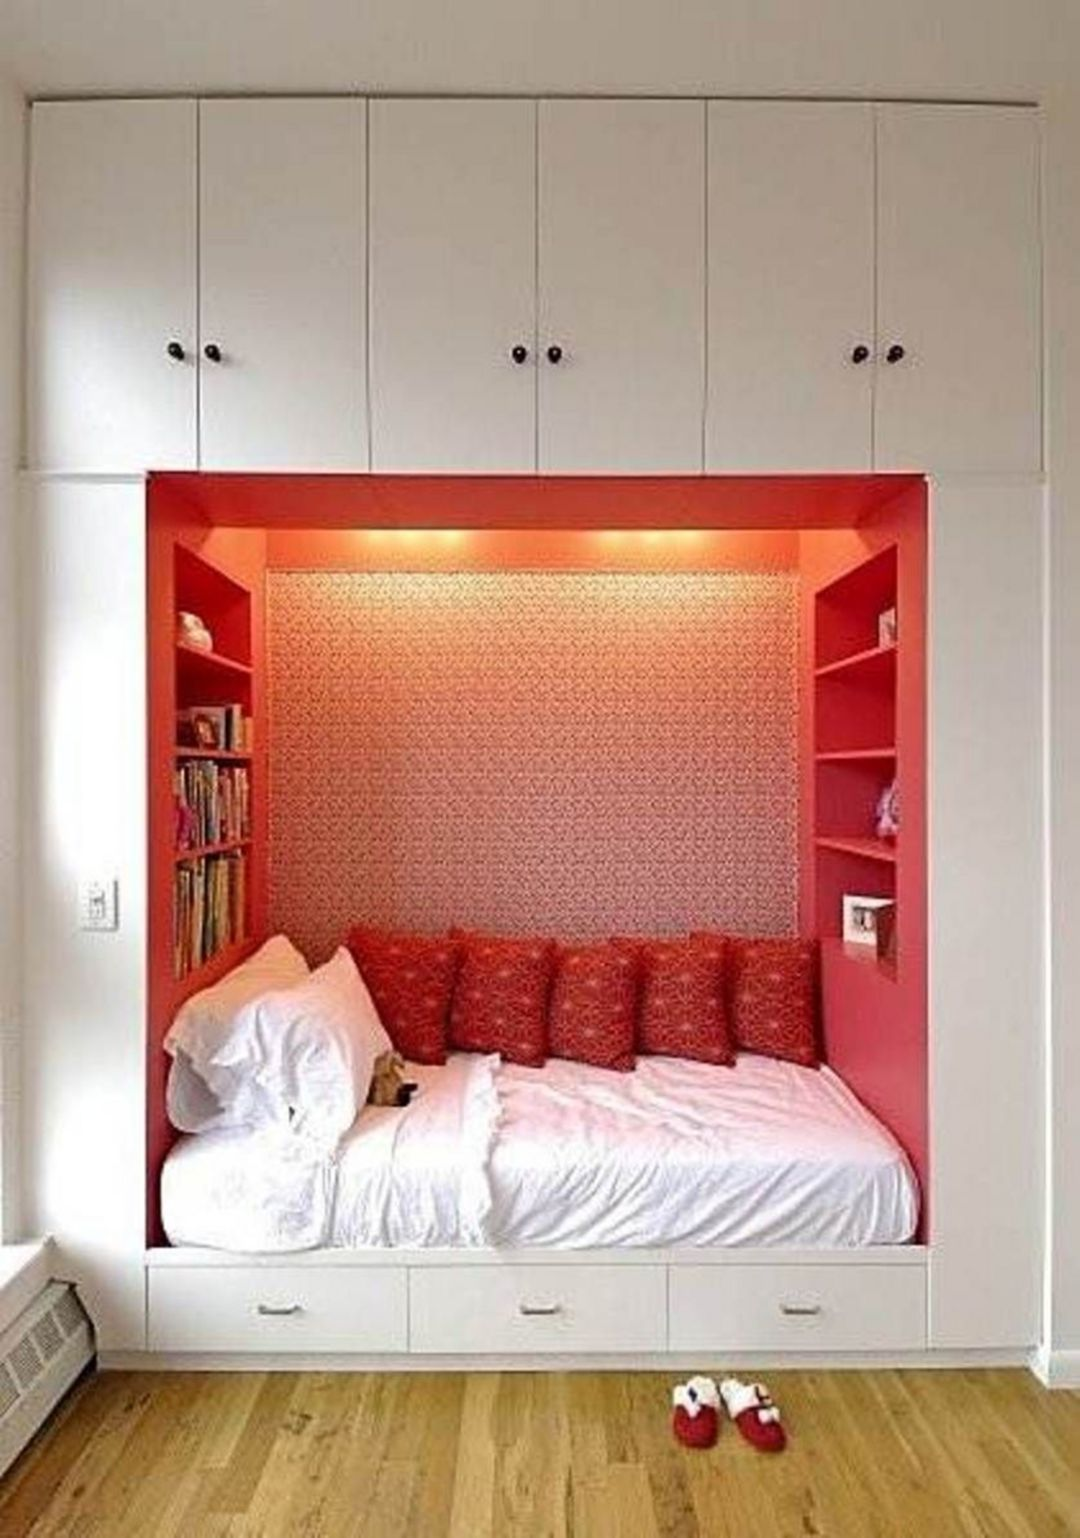 25+ Best Small Bedroom Design Ideas For Your Kids is part of  - Have you ever found the most comfortable bedroom design and made it feel at home  90% of bedrooms that fulfill the ideal criteria use a simple bedroom design with high functionality  So, a simple b…